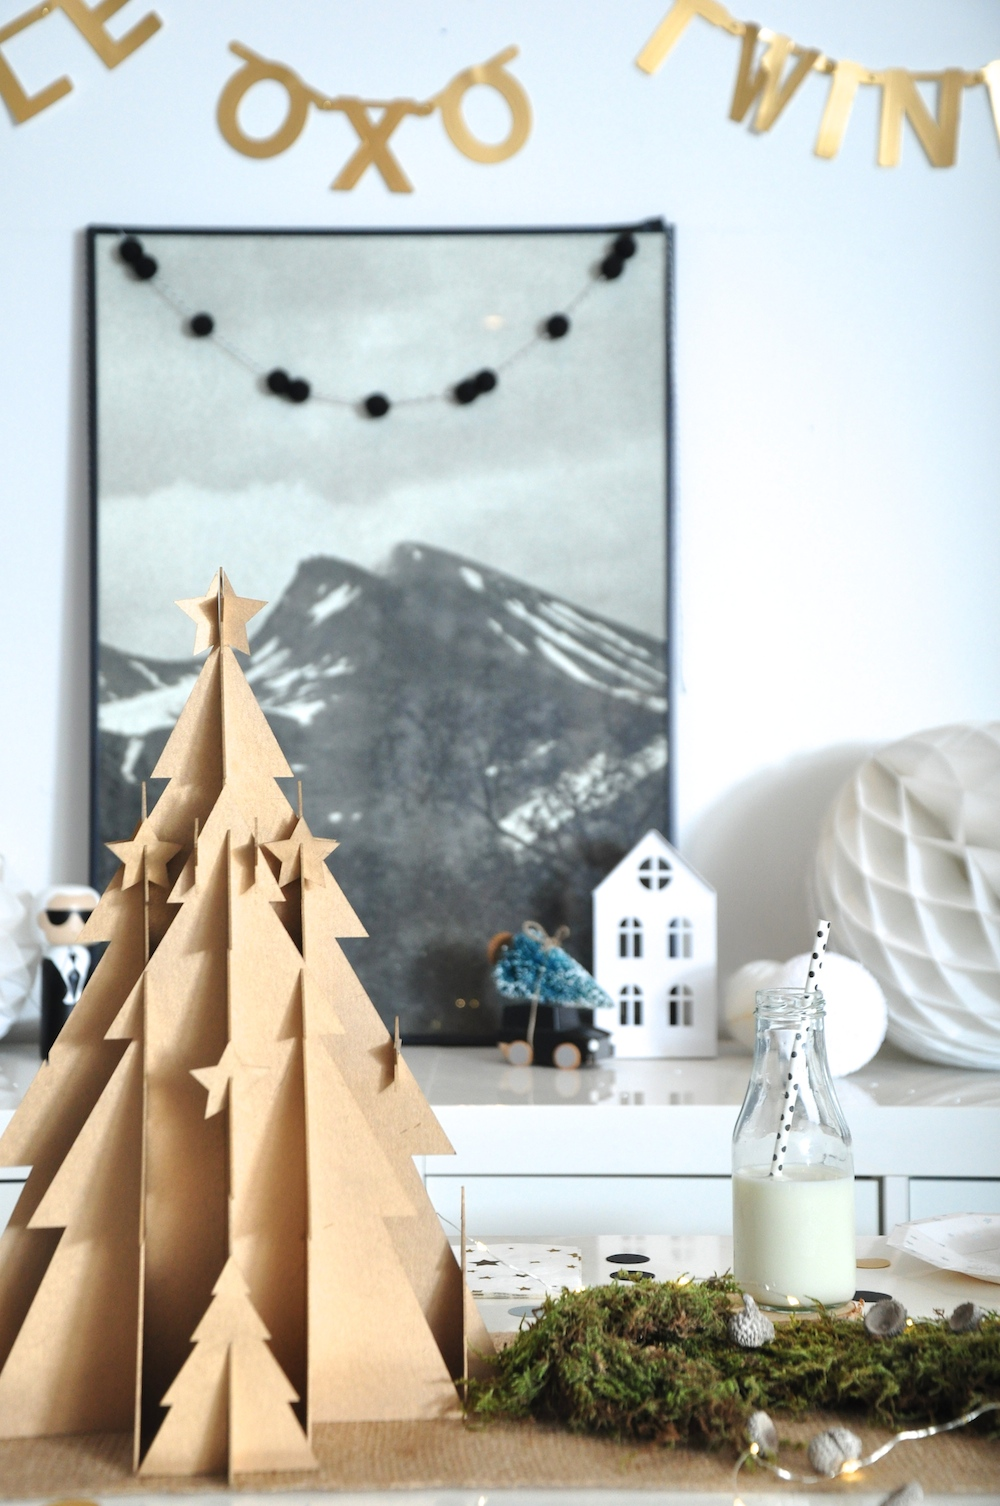 A_little_party_box_cardboard_christmas_tree